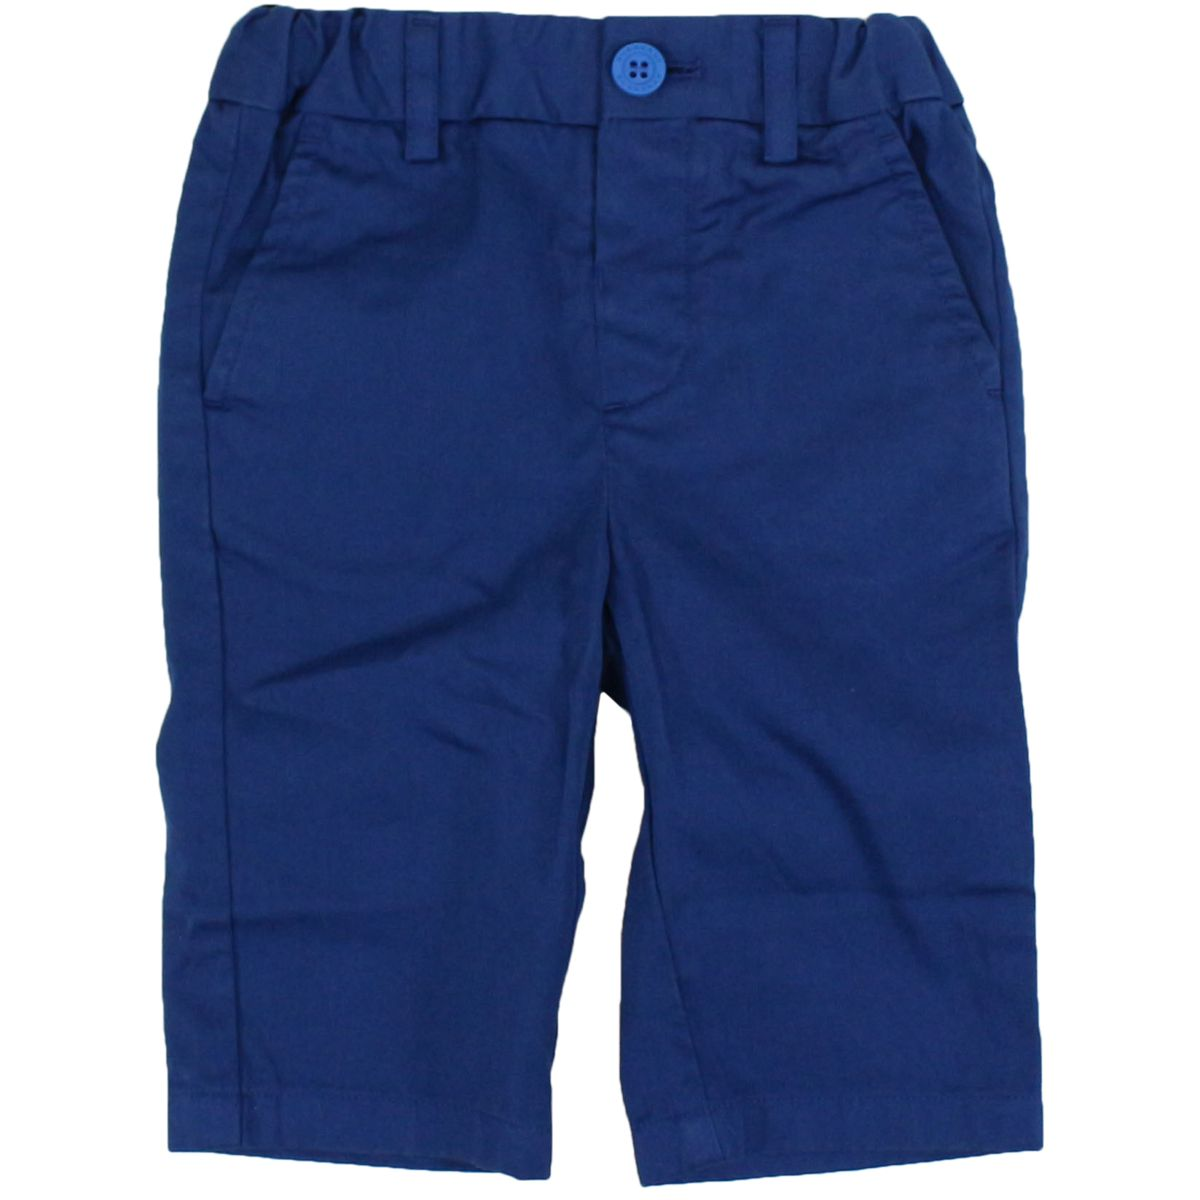 Cotton shorts Blue Burberry